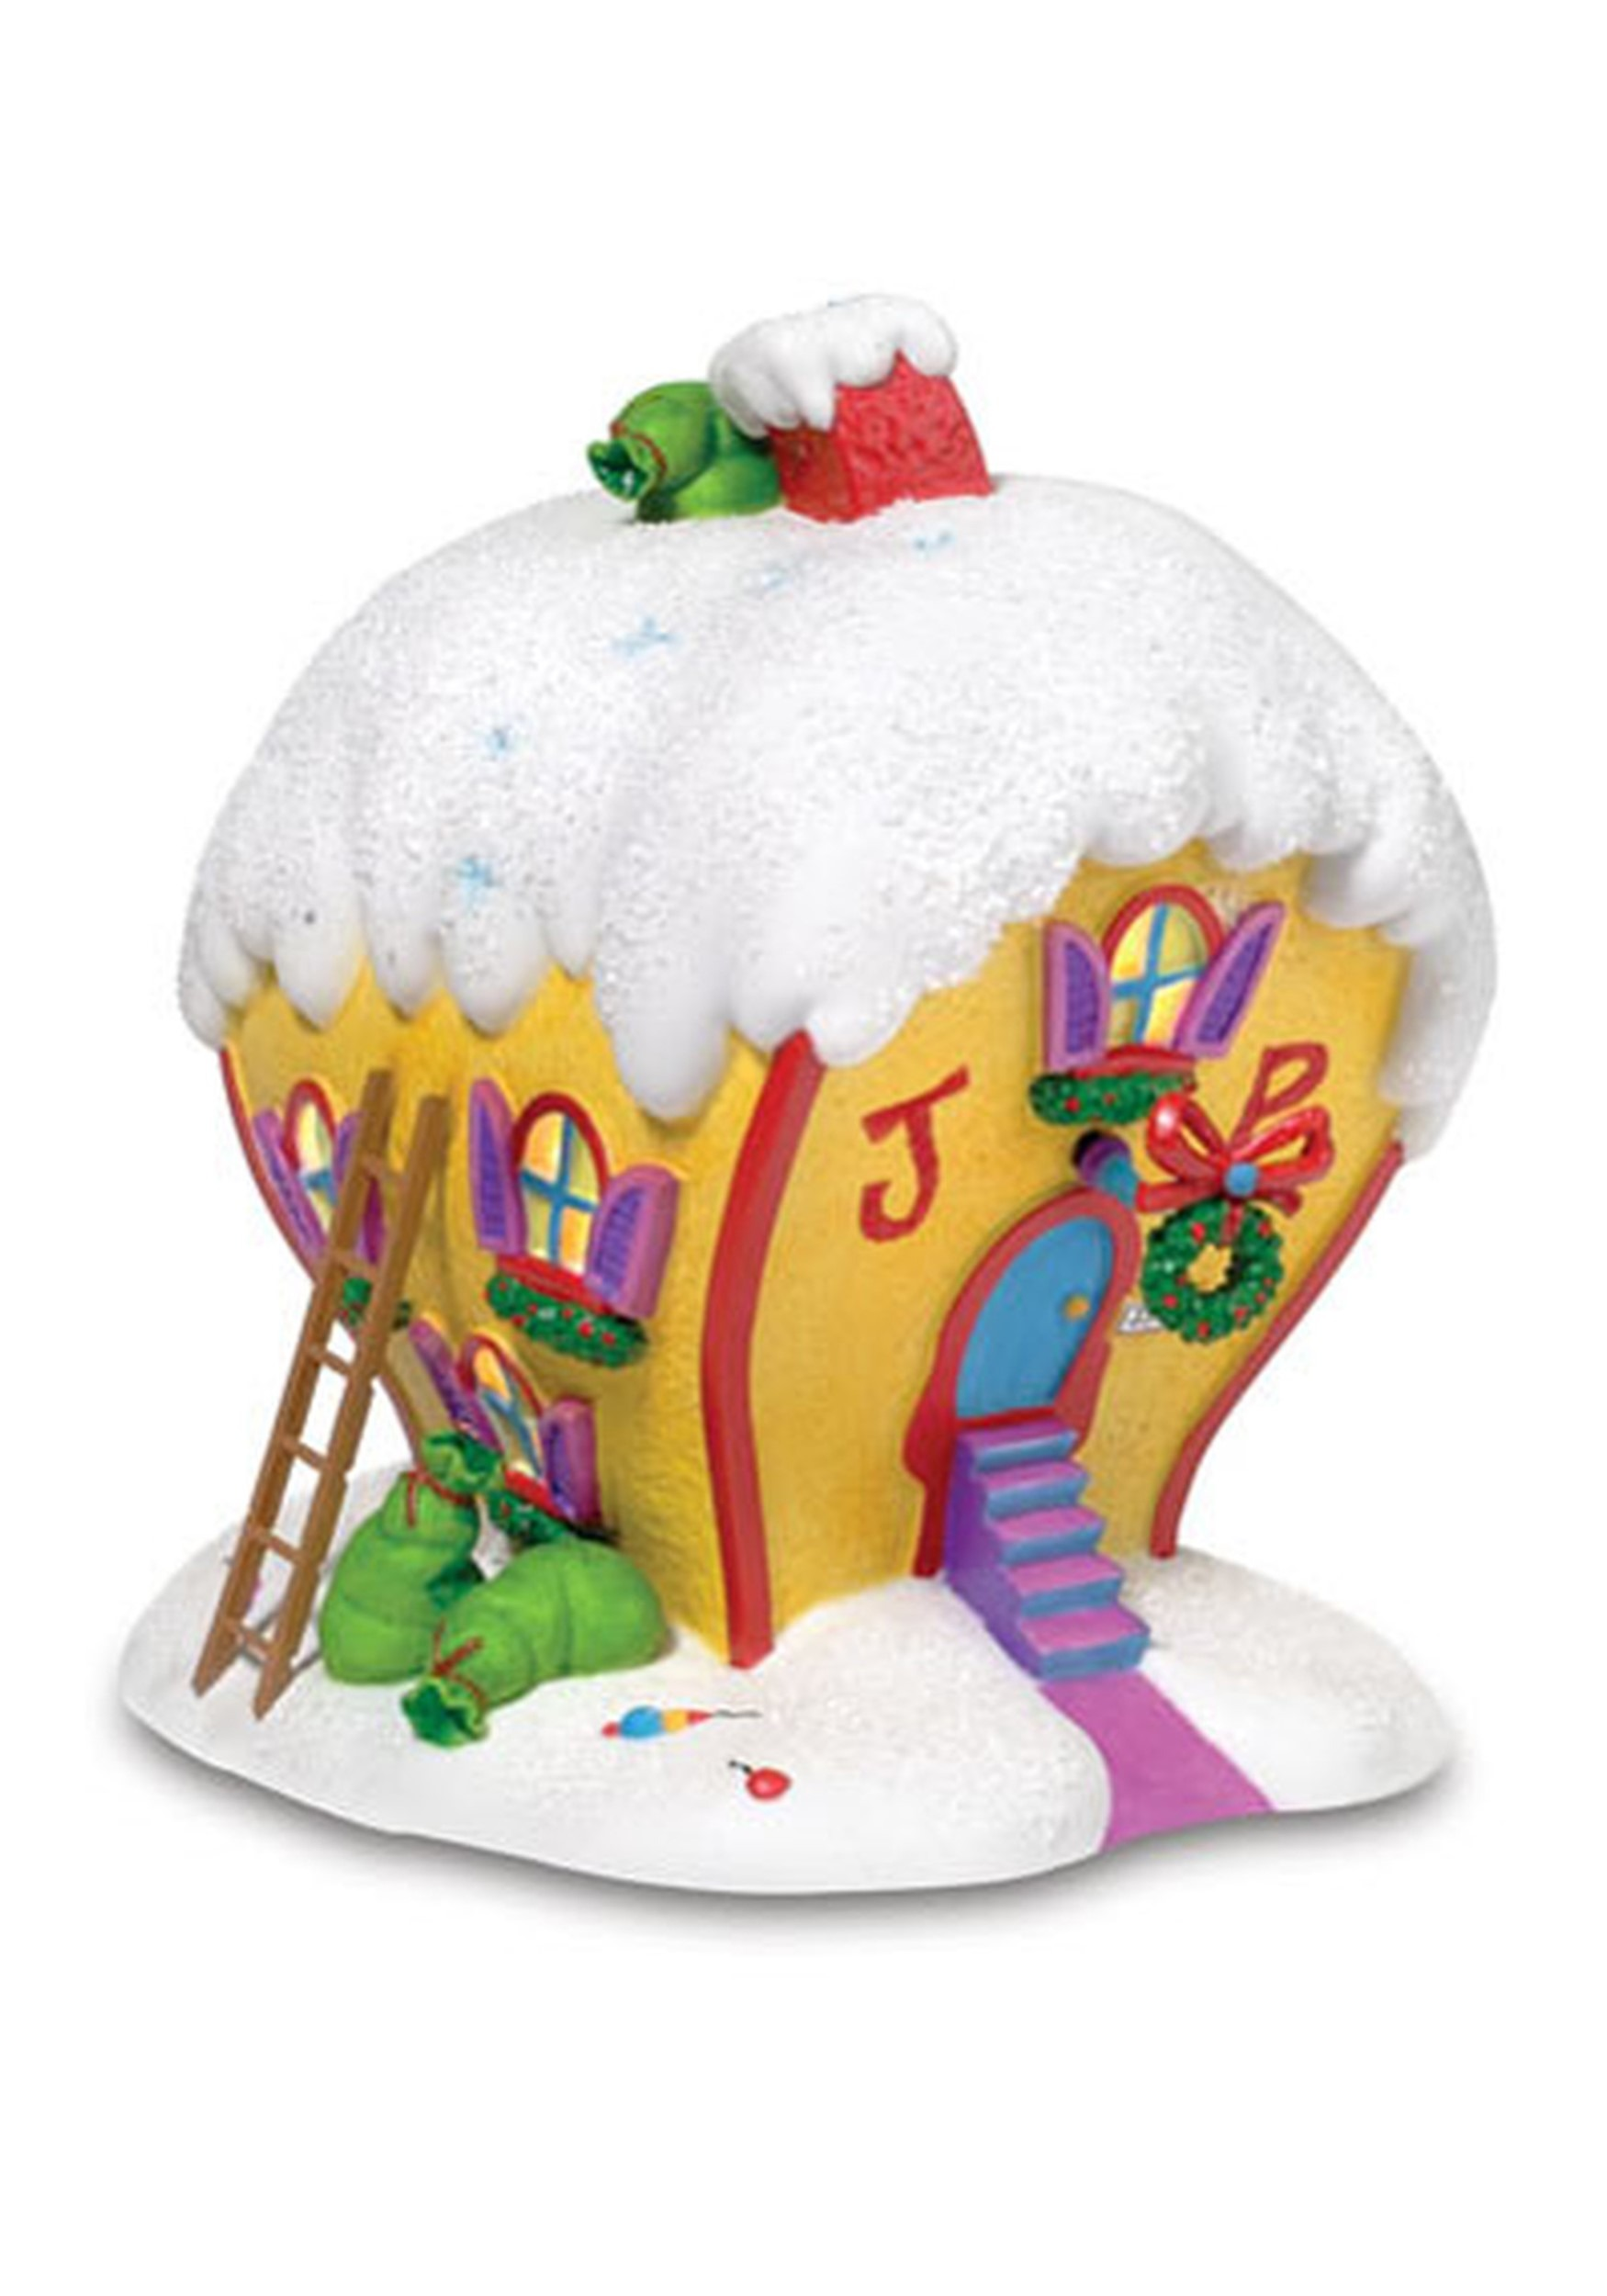 Department 56 The Grinch Cindy-Lou Who's House